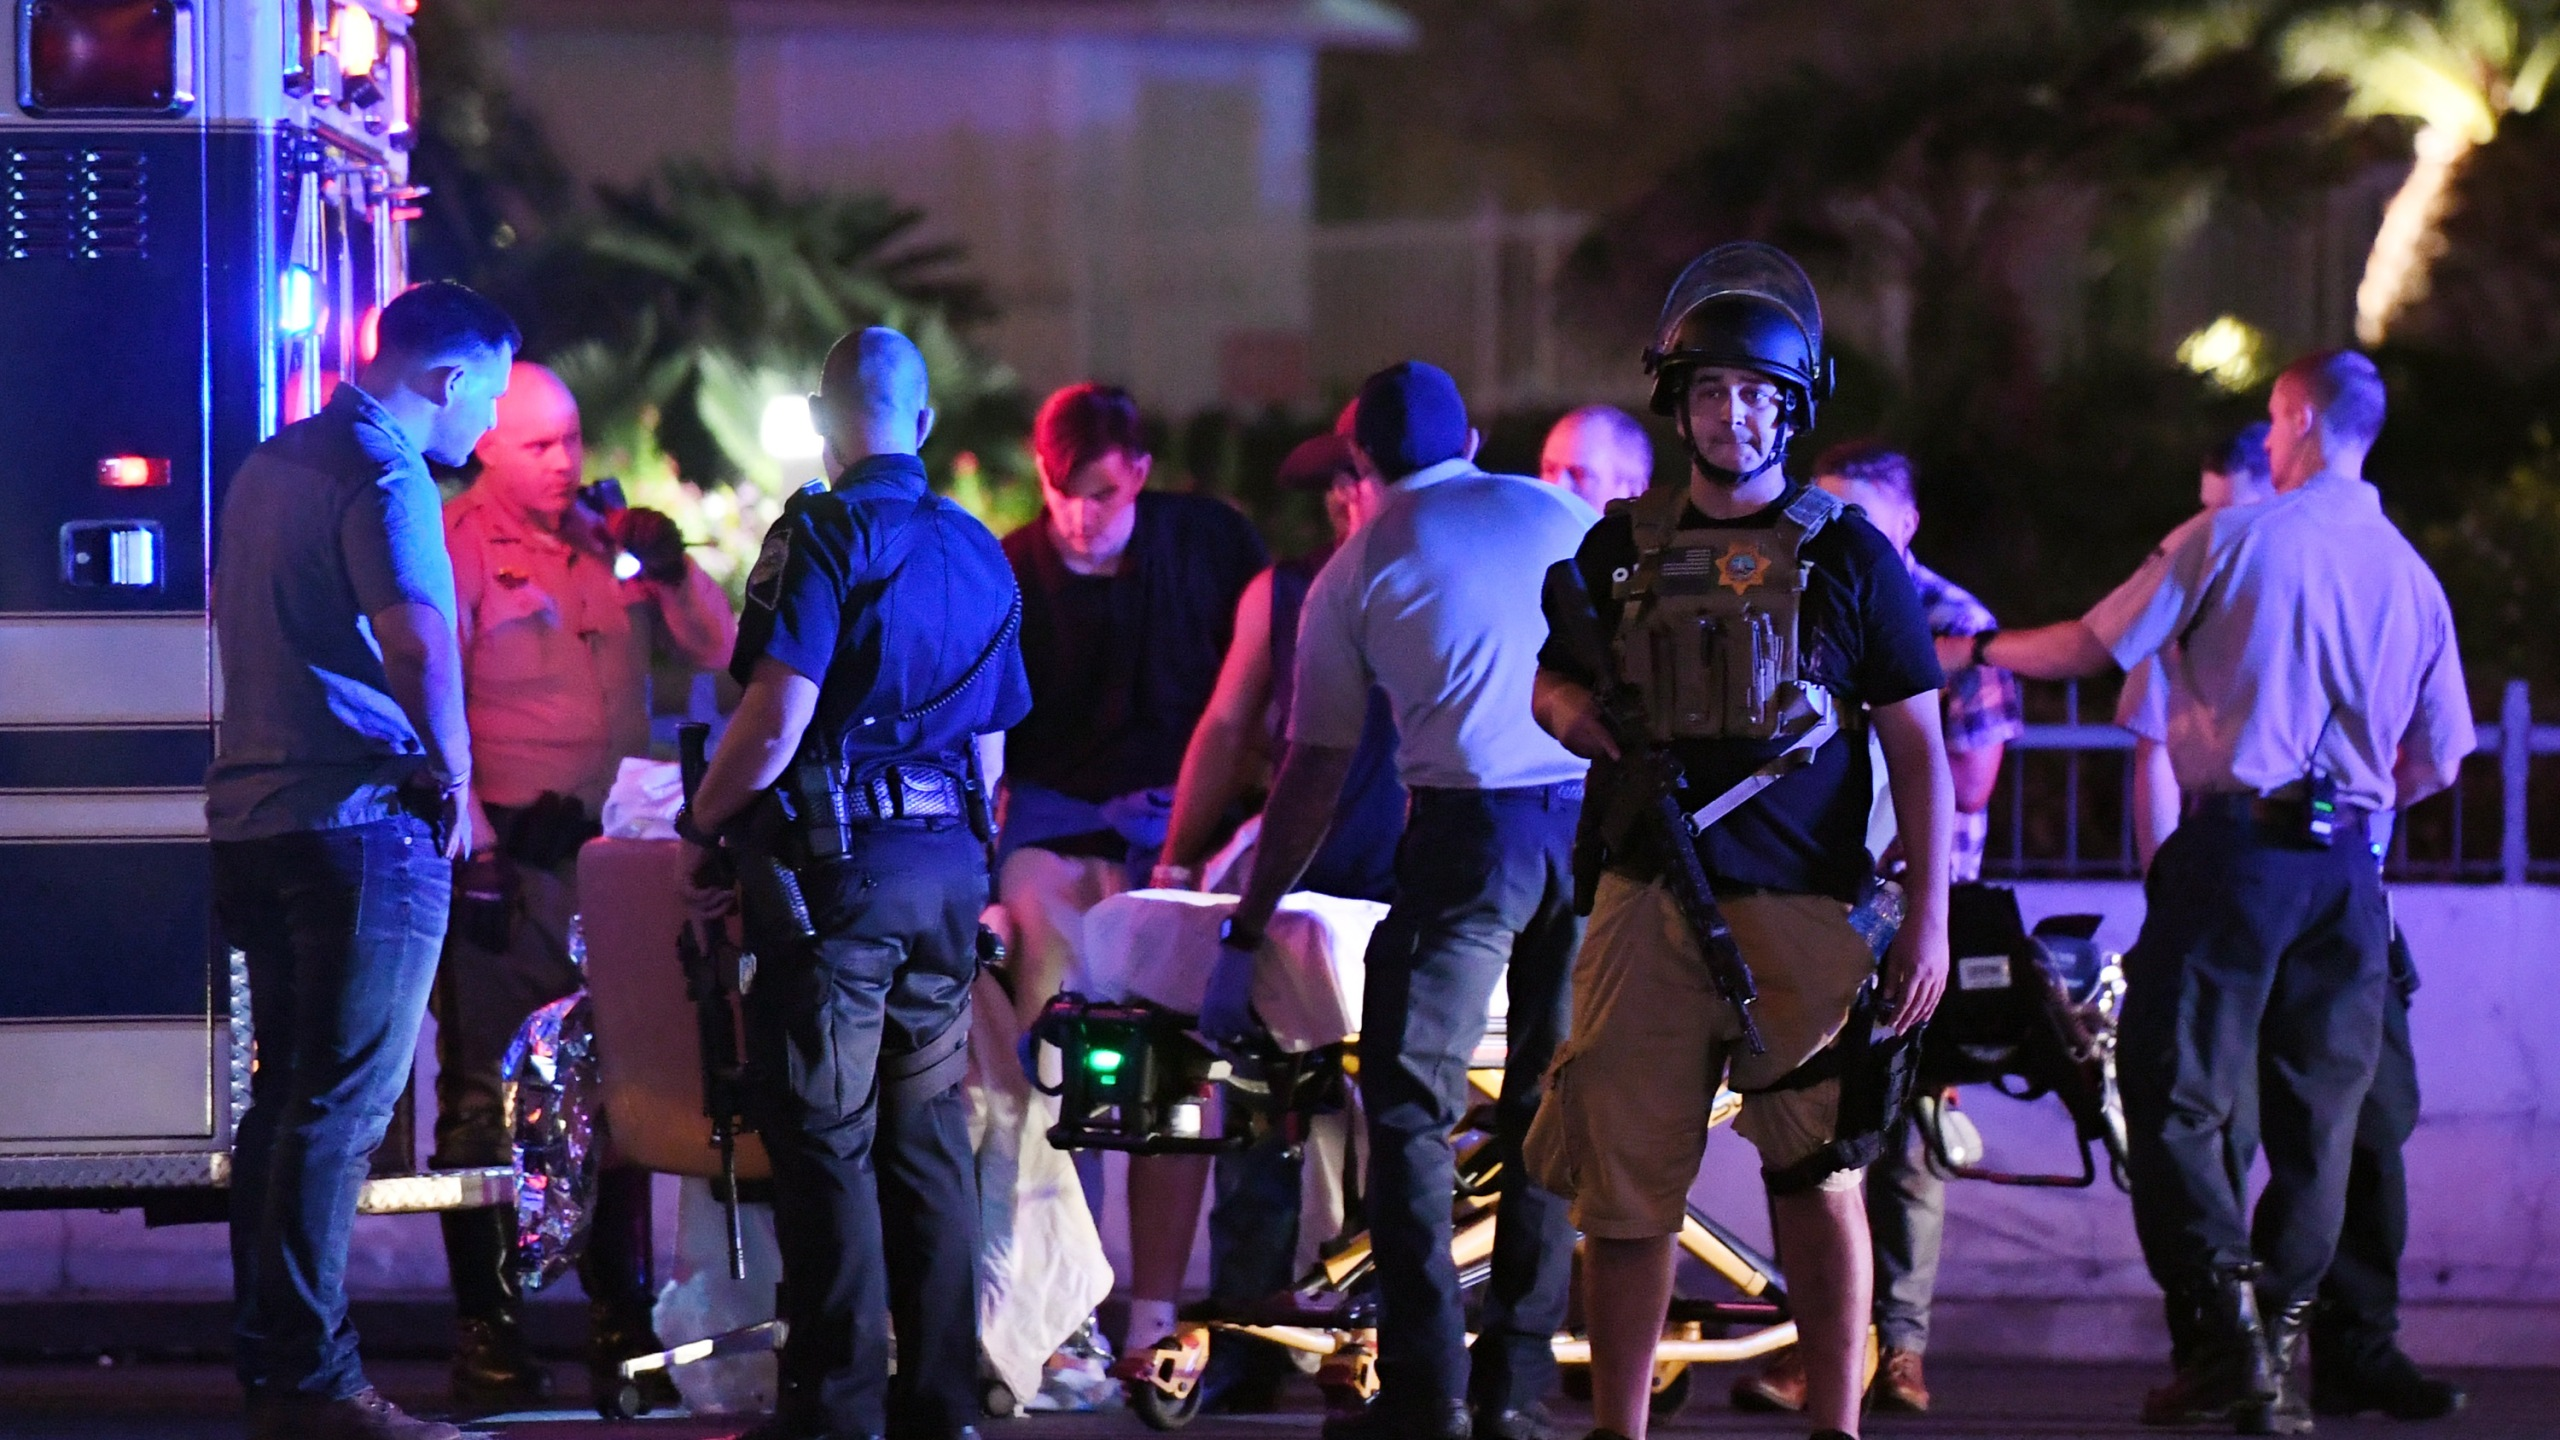 Reported Shooting At Mandalay Bay In Las Vegas_464753